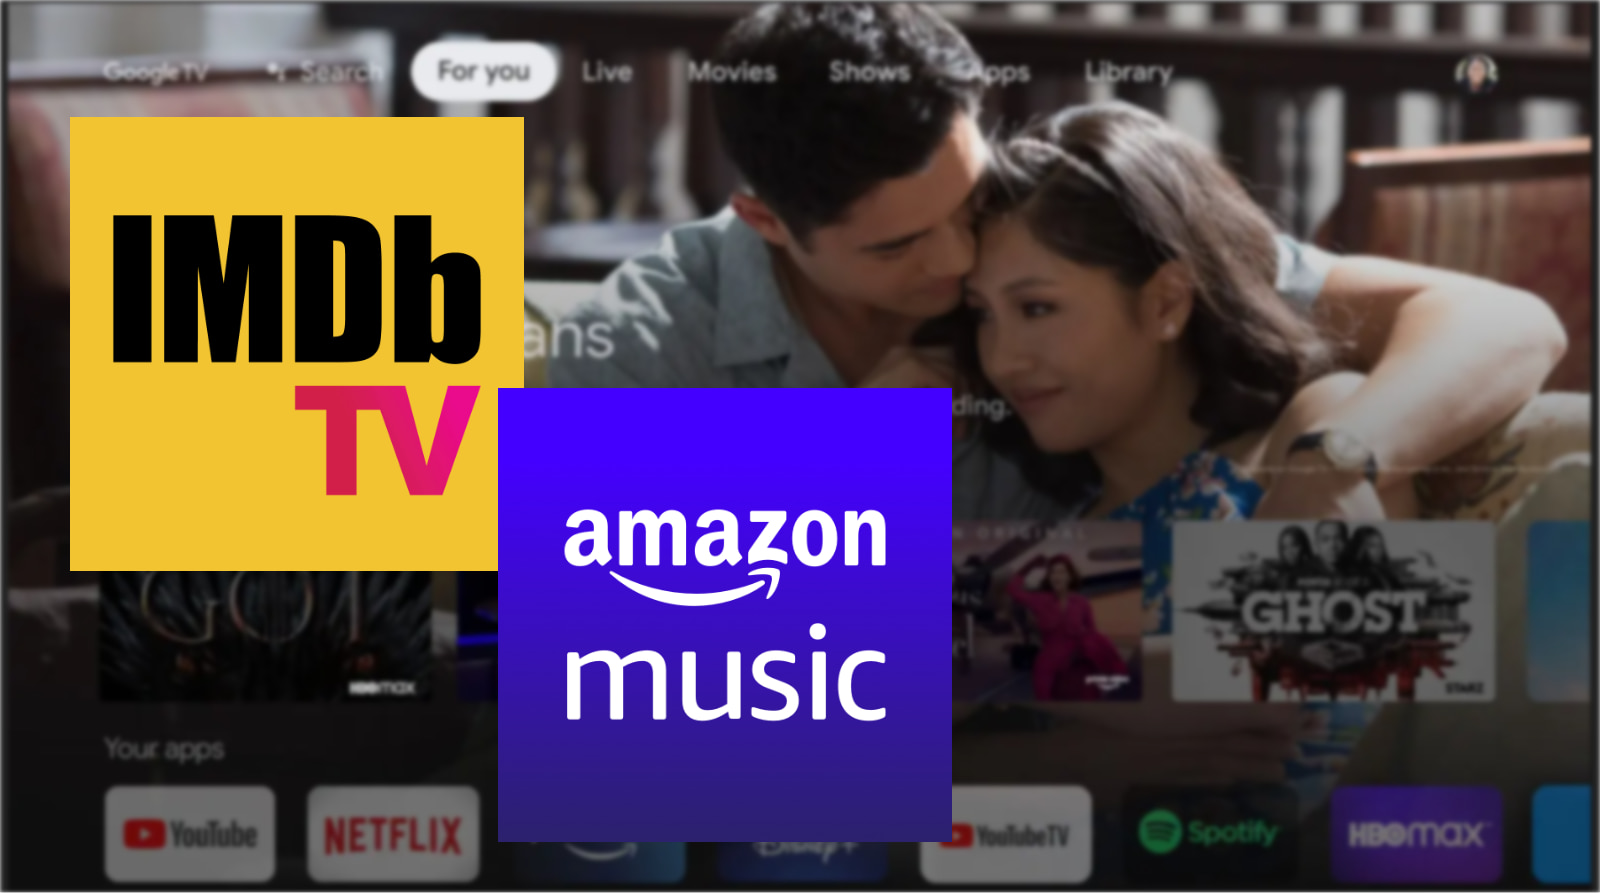 Amazon Music and IMDb TV arrive on Chromecast with Google TV